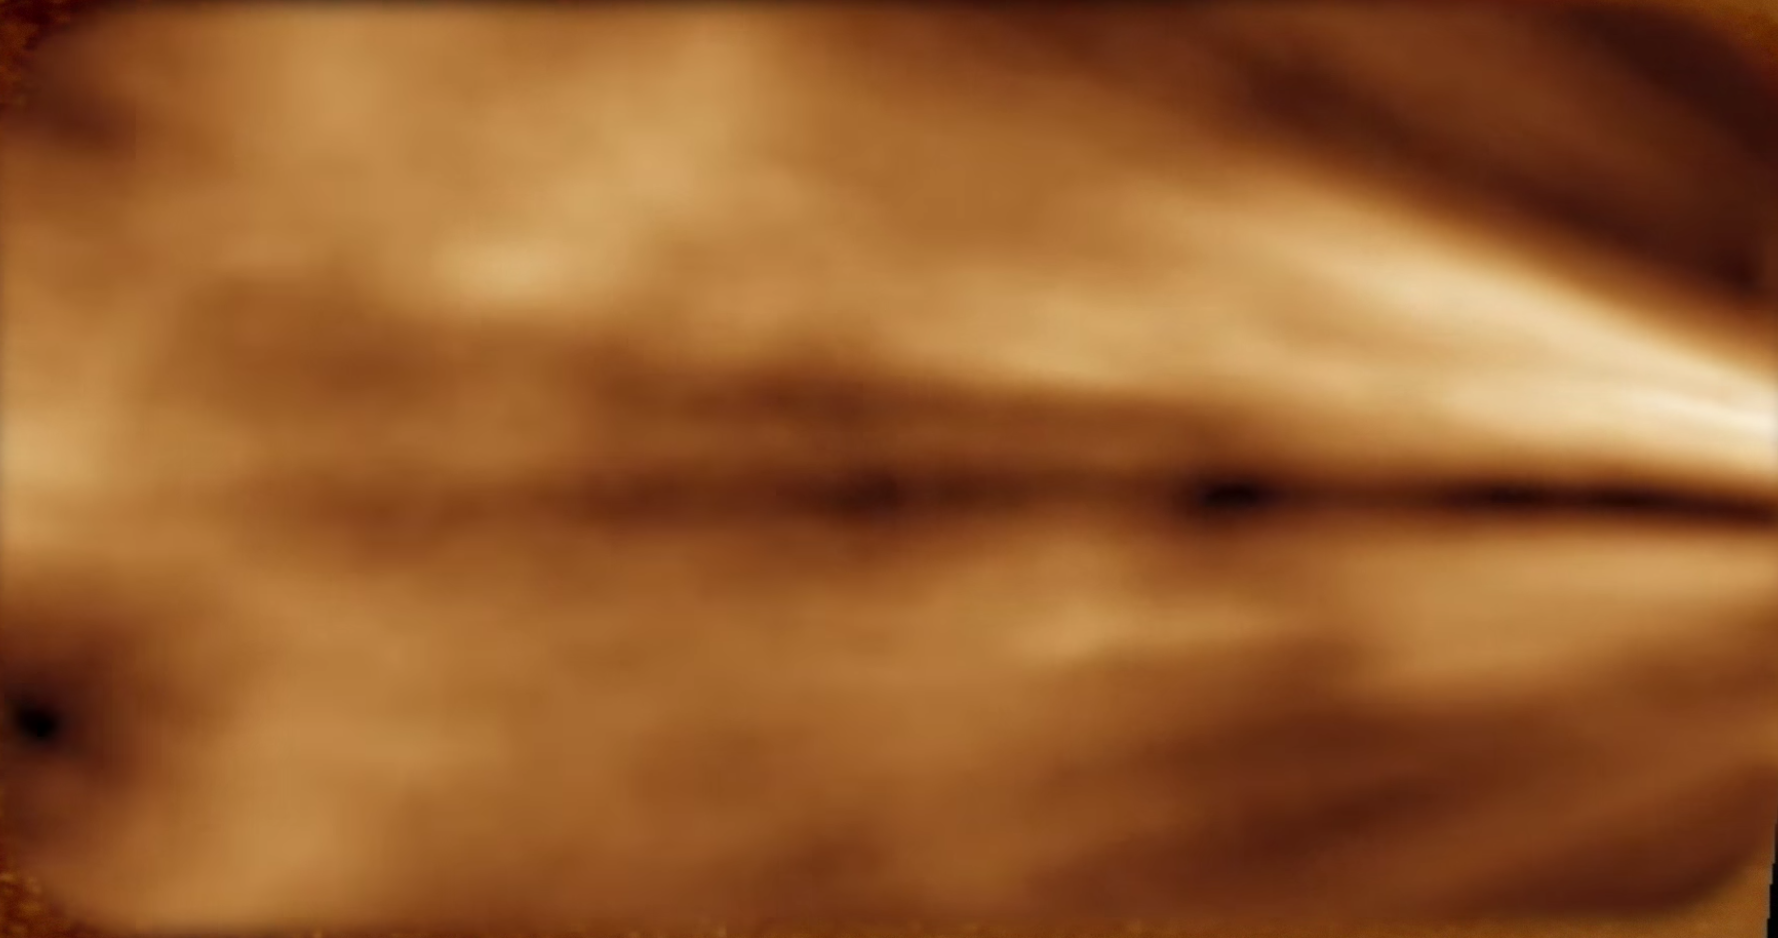 In this image, the solar wind is seen in a region we've never been able to see in this detail before.